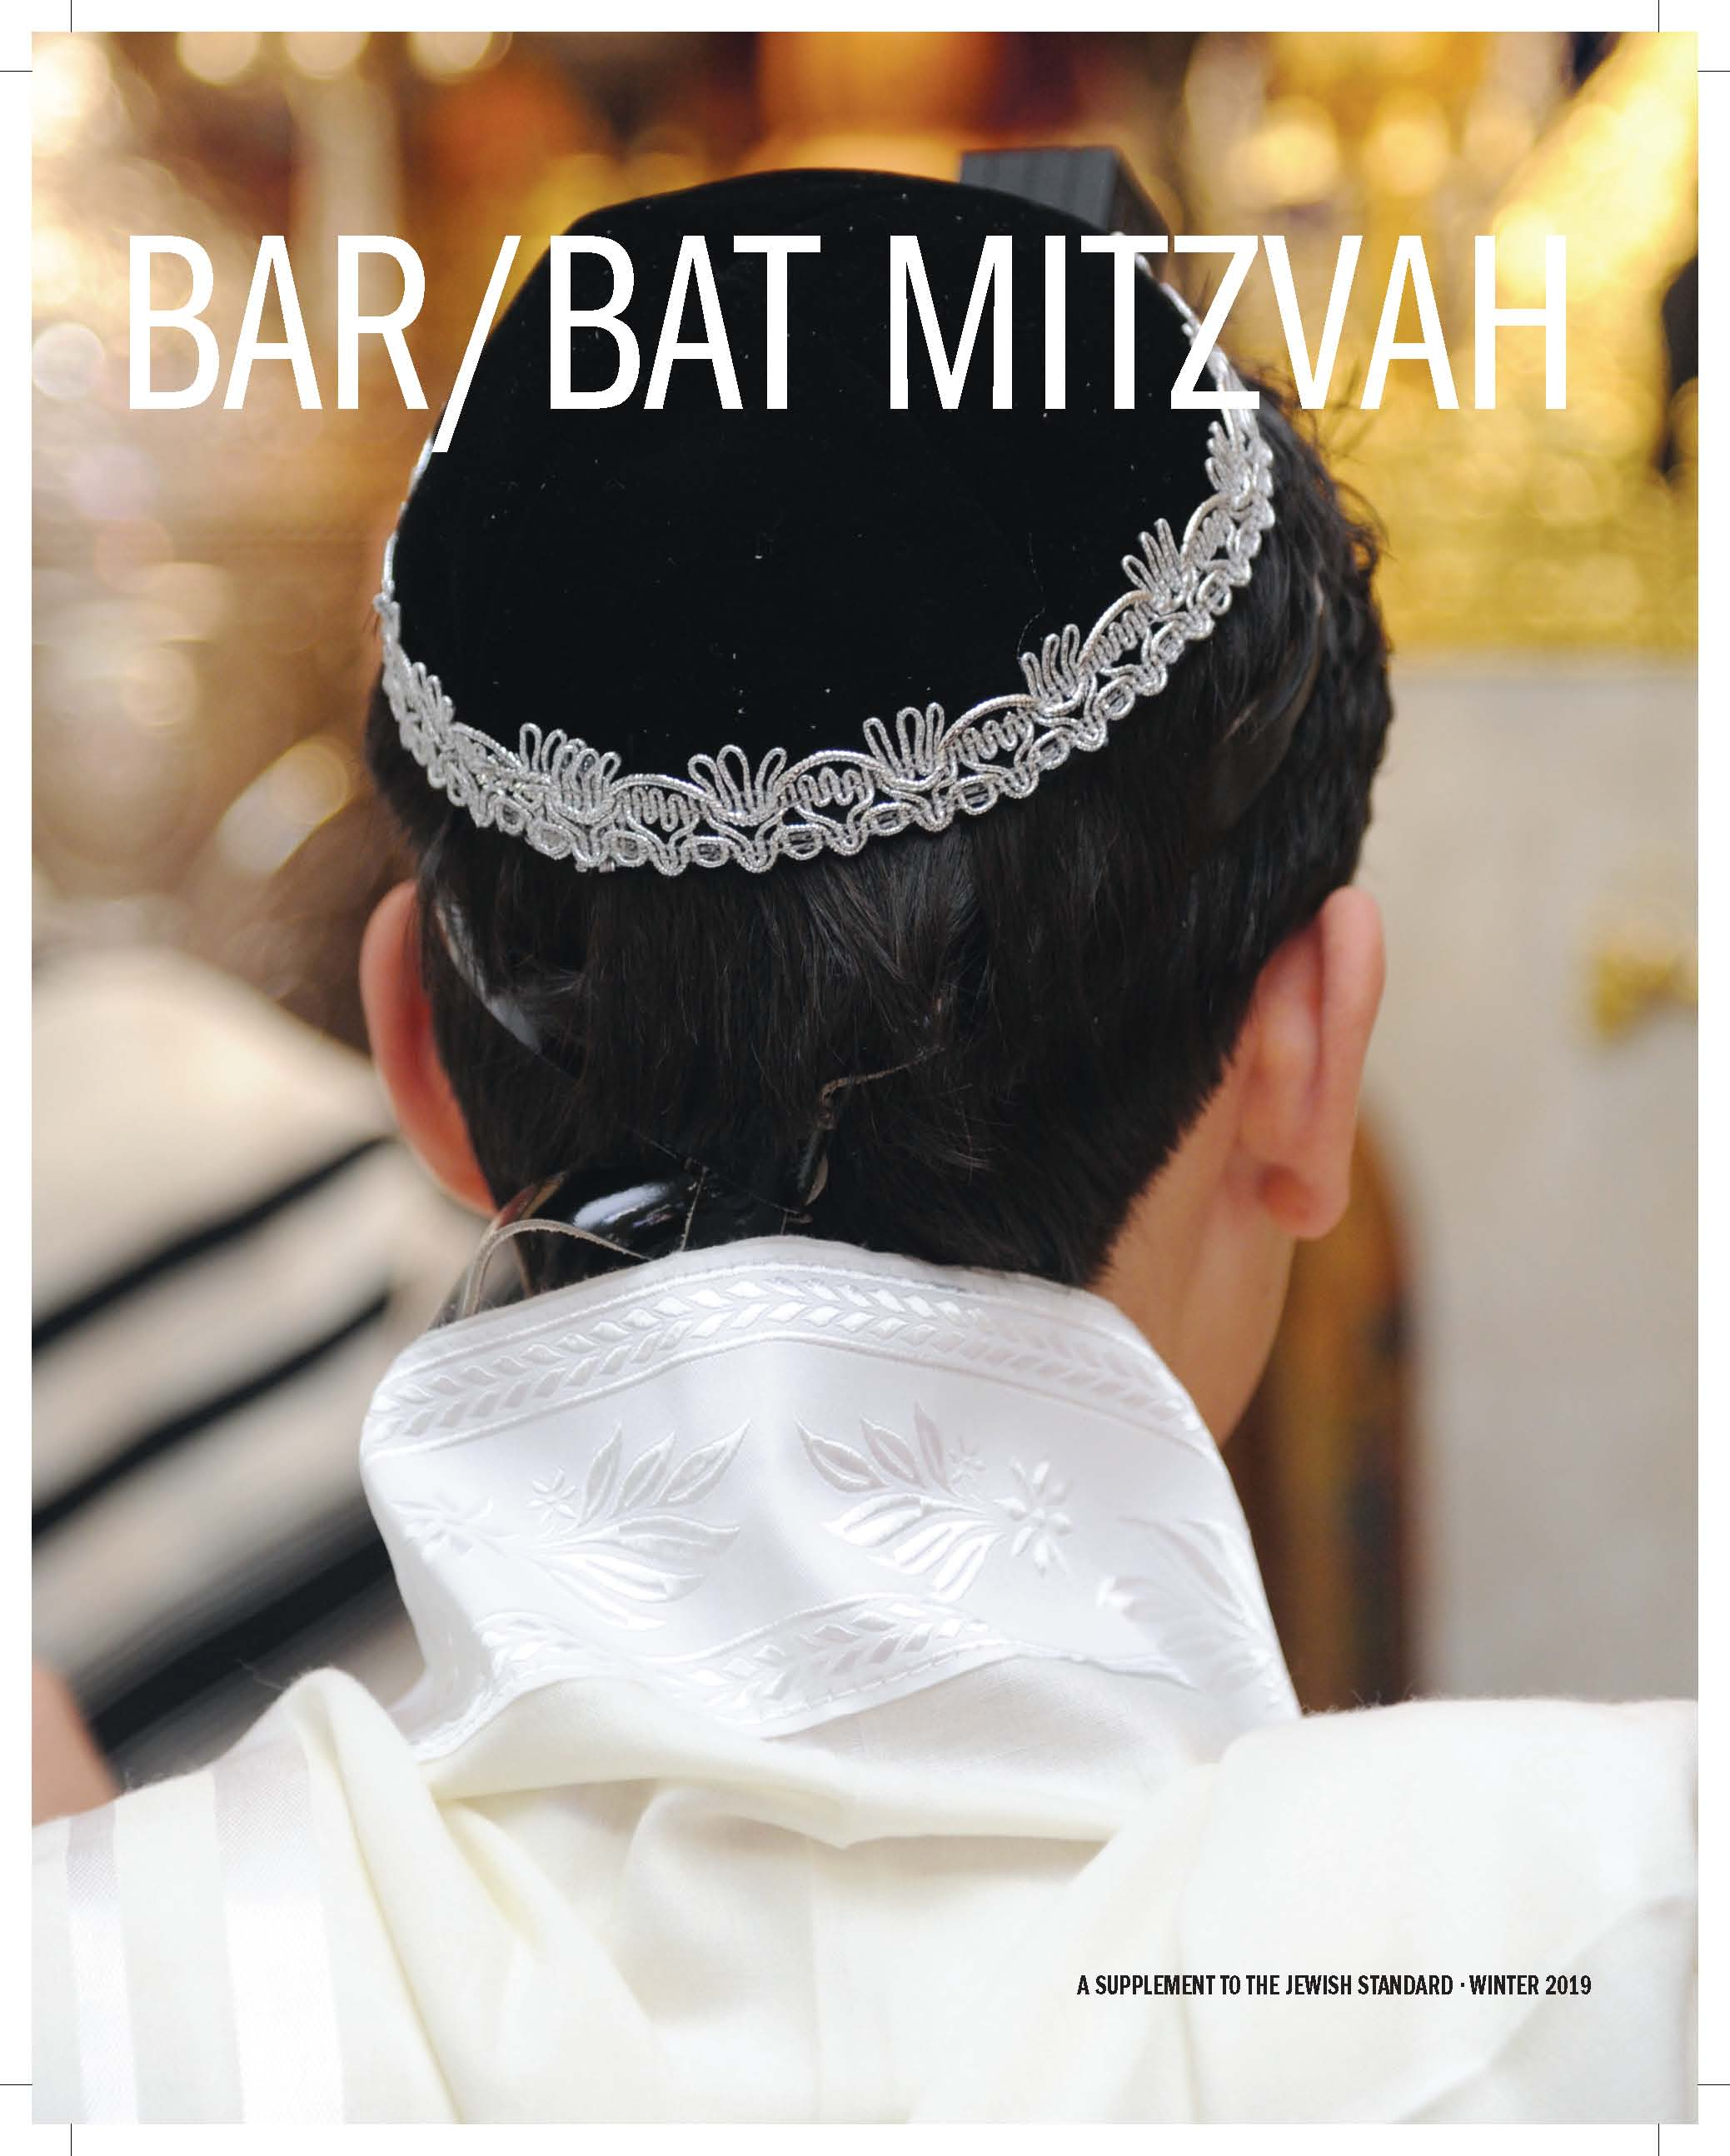 Bar / Bat Mitzvah, Winter 2019